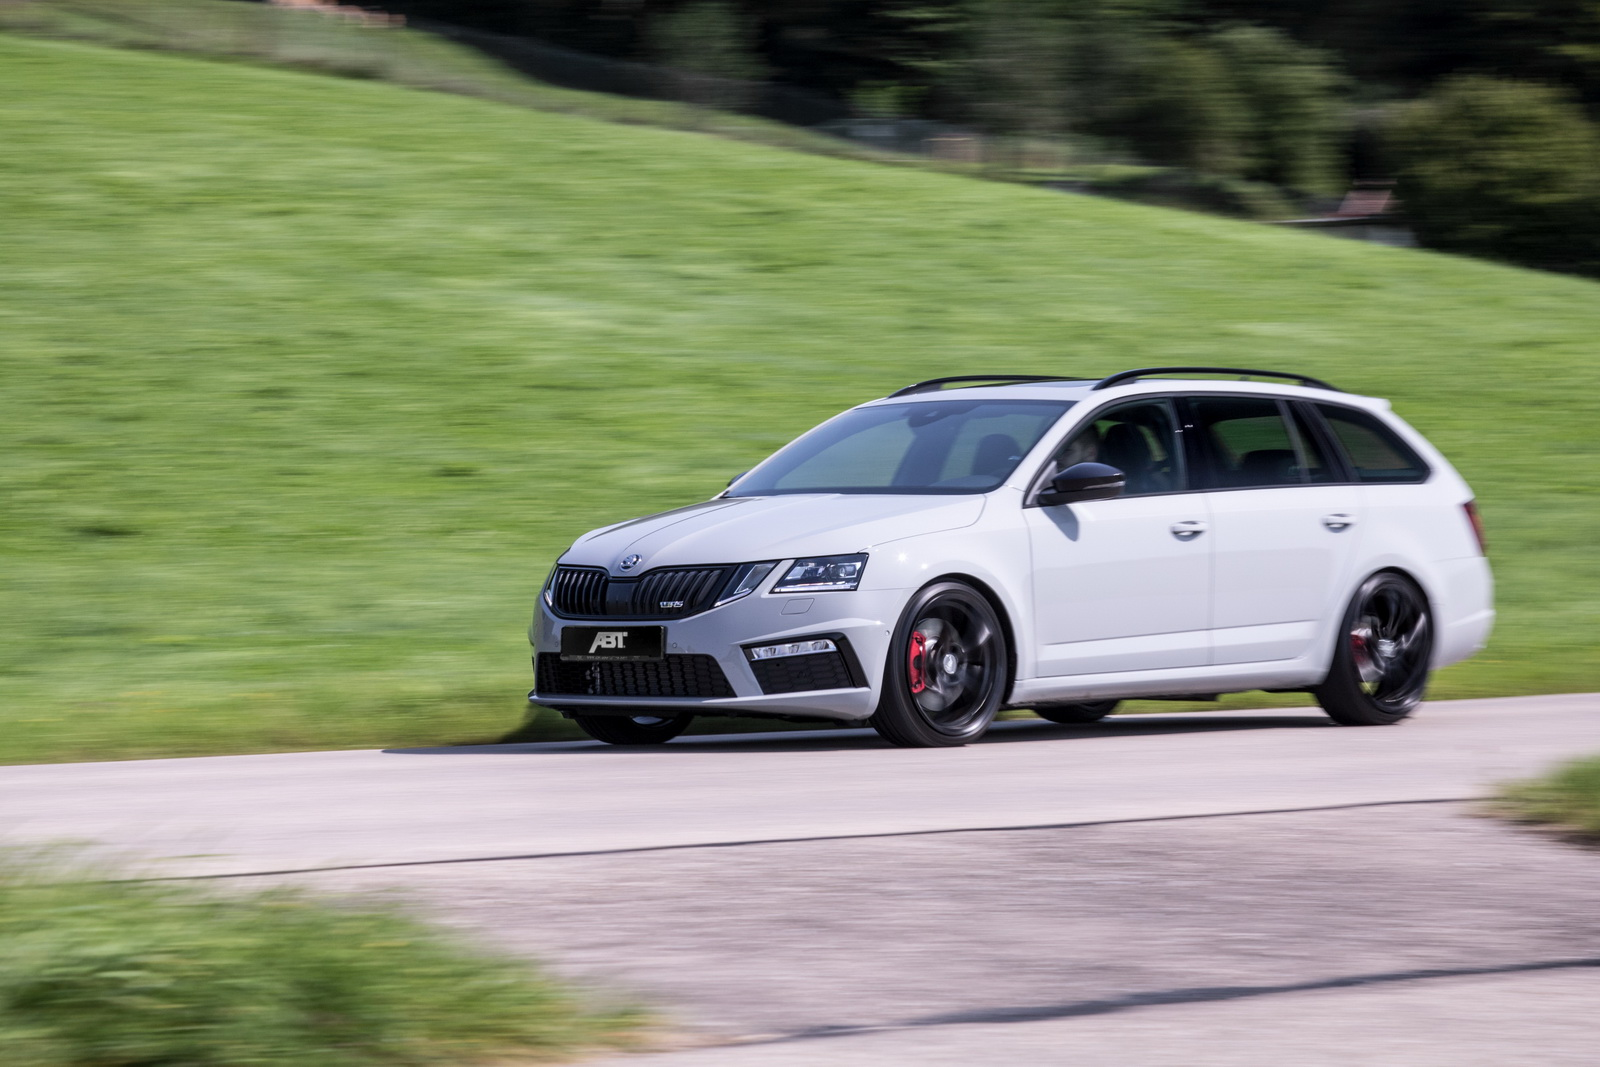 Skoda_Octavia_RS_by_ABT_04